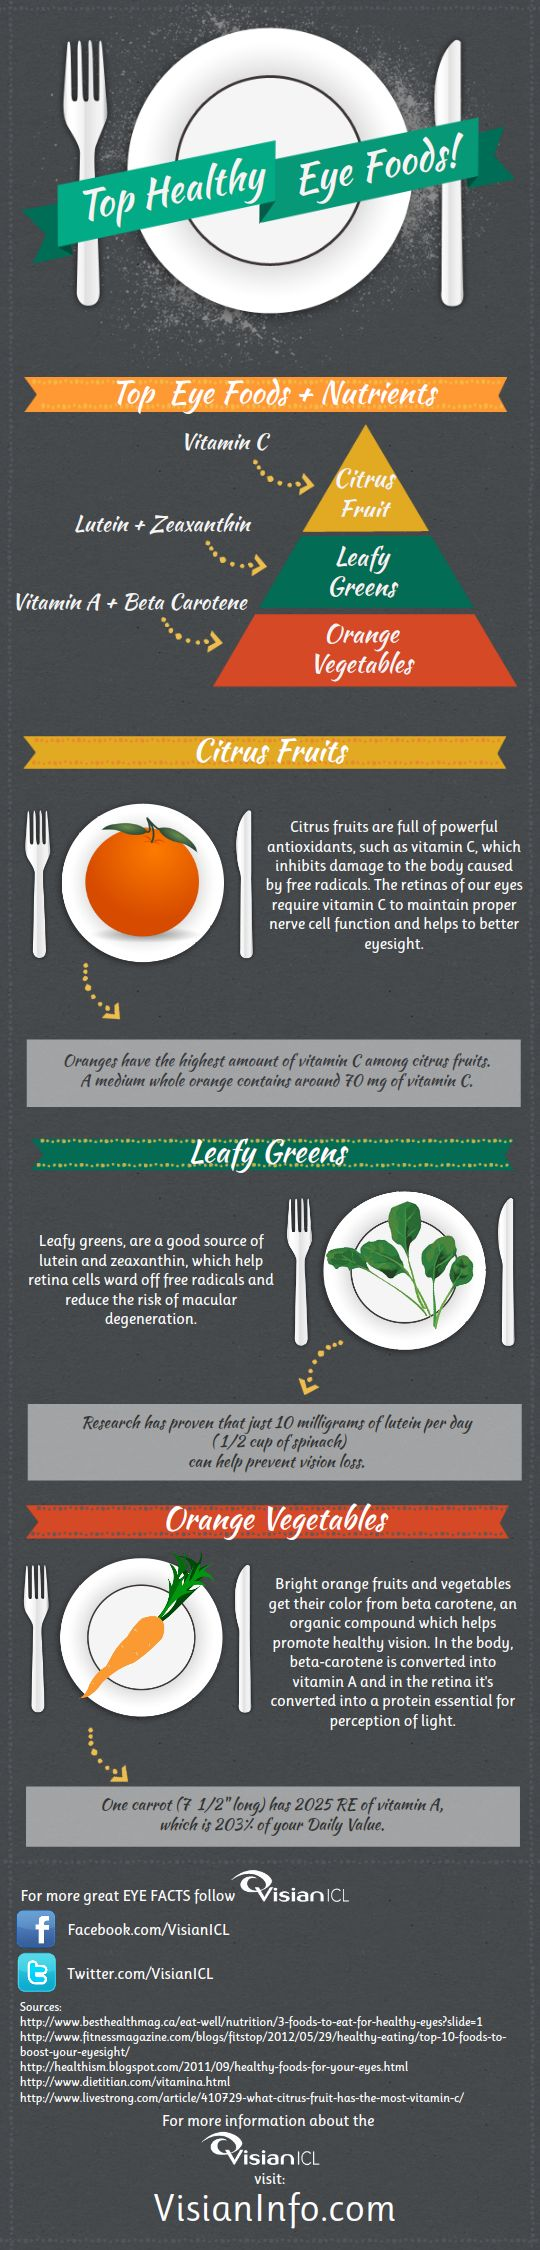 Did you know that eating right can help keep your eyes healthy?! Take a look at this info-graphic we put together of 3 easy foods packed with amazing nutrients for your eyes. For more #eyefacts #eyetips #eyefoods #eyecare #eye #lookoptometry #manhattanbeach #health #nutrition